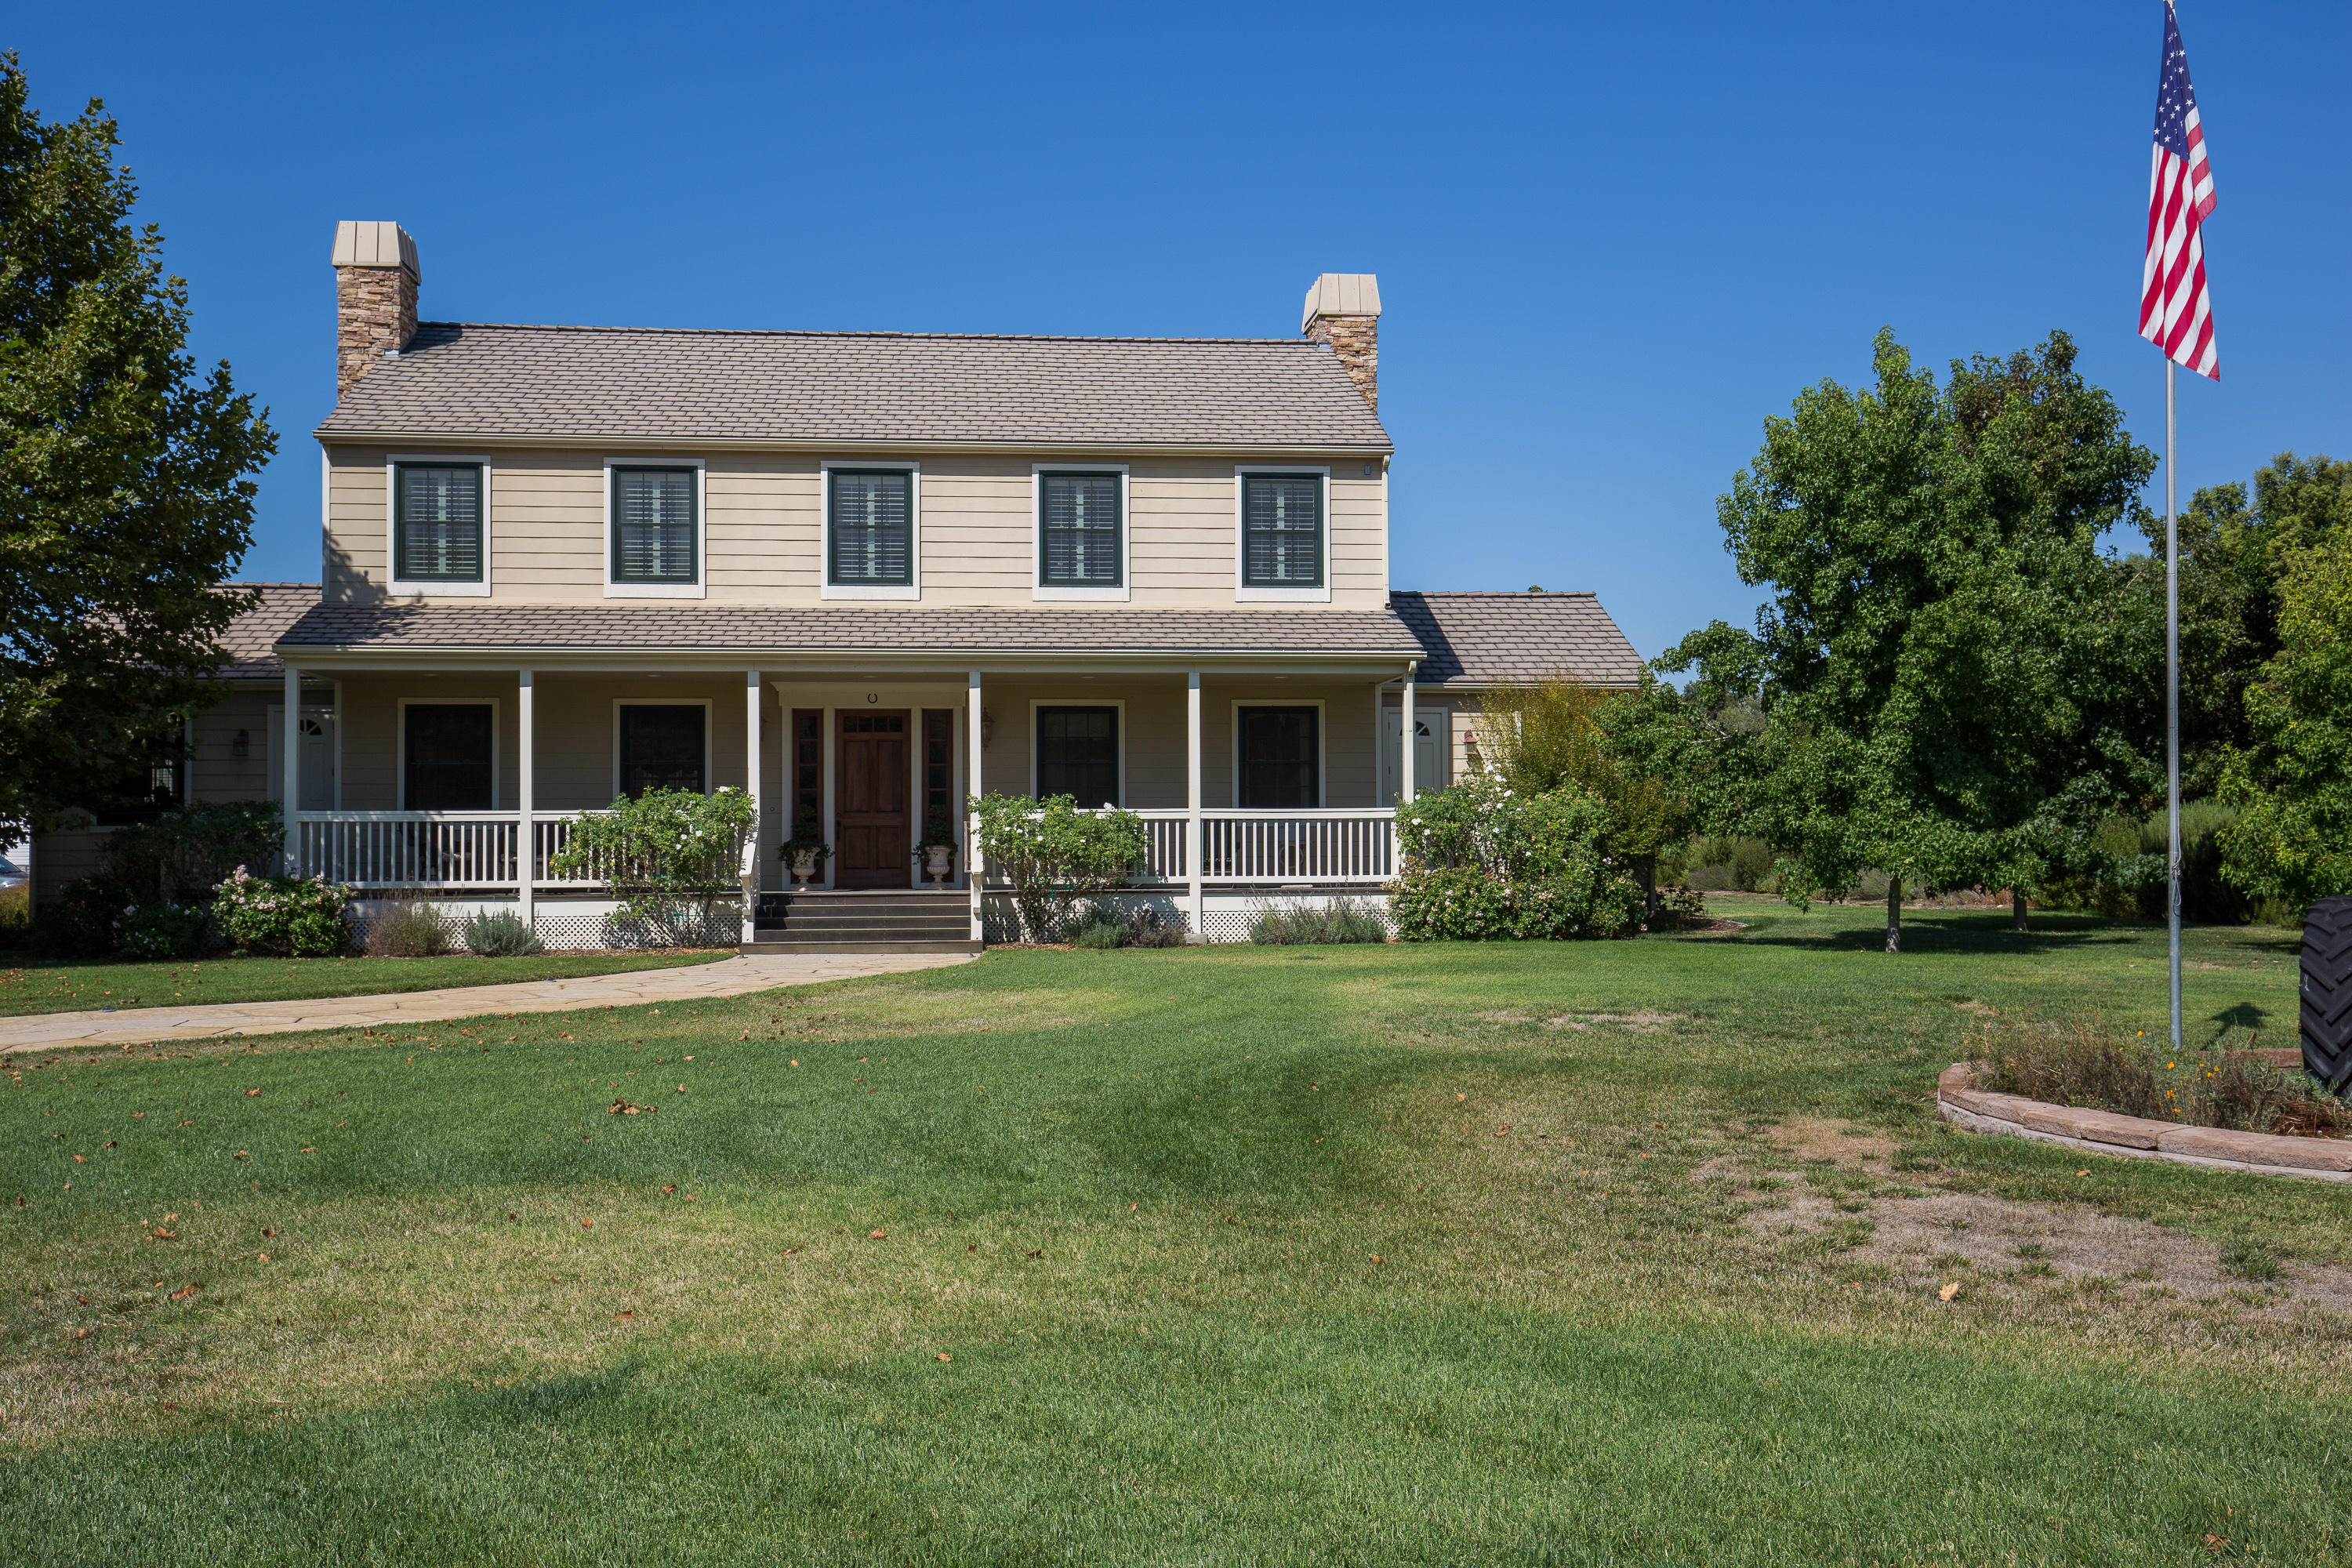 Property photo for 2288 Coyote Creek Rd Solvang, California 93463 - 17-3056